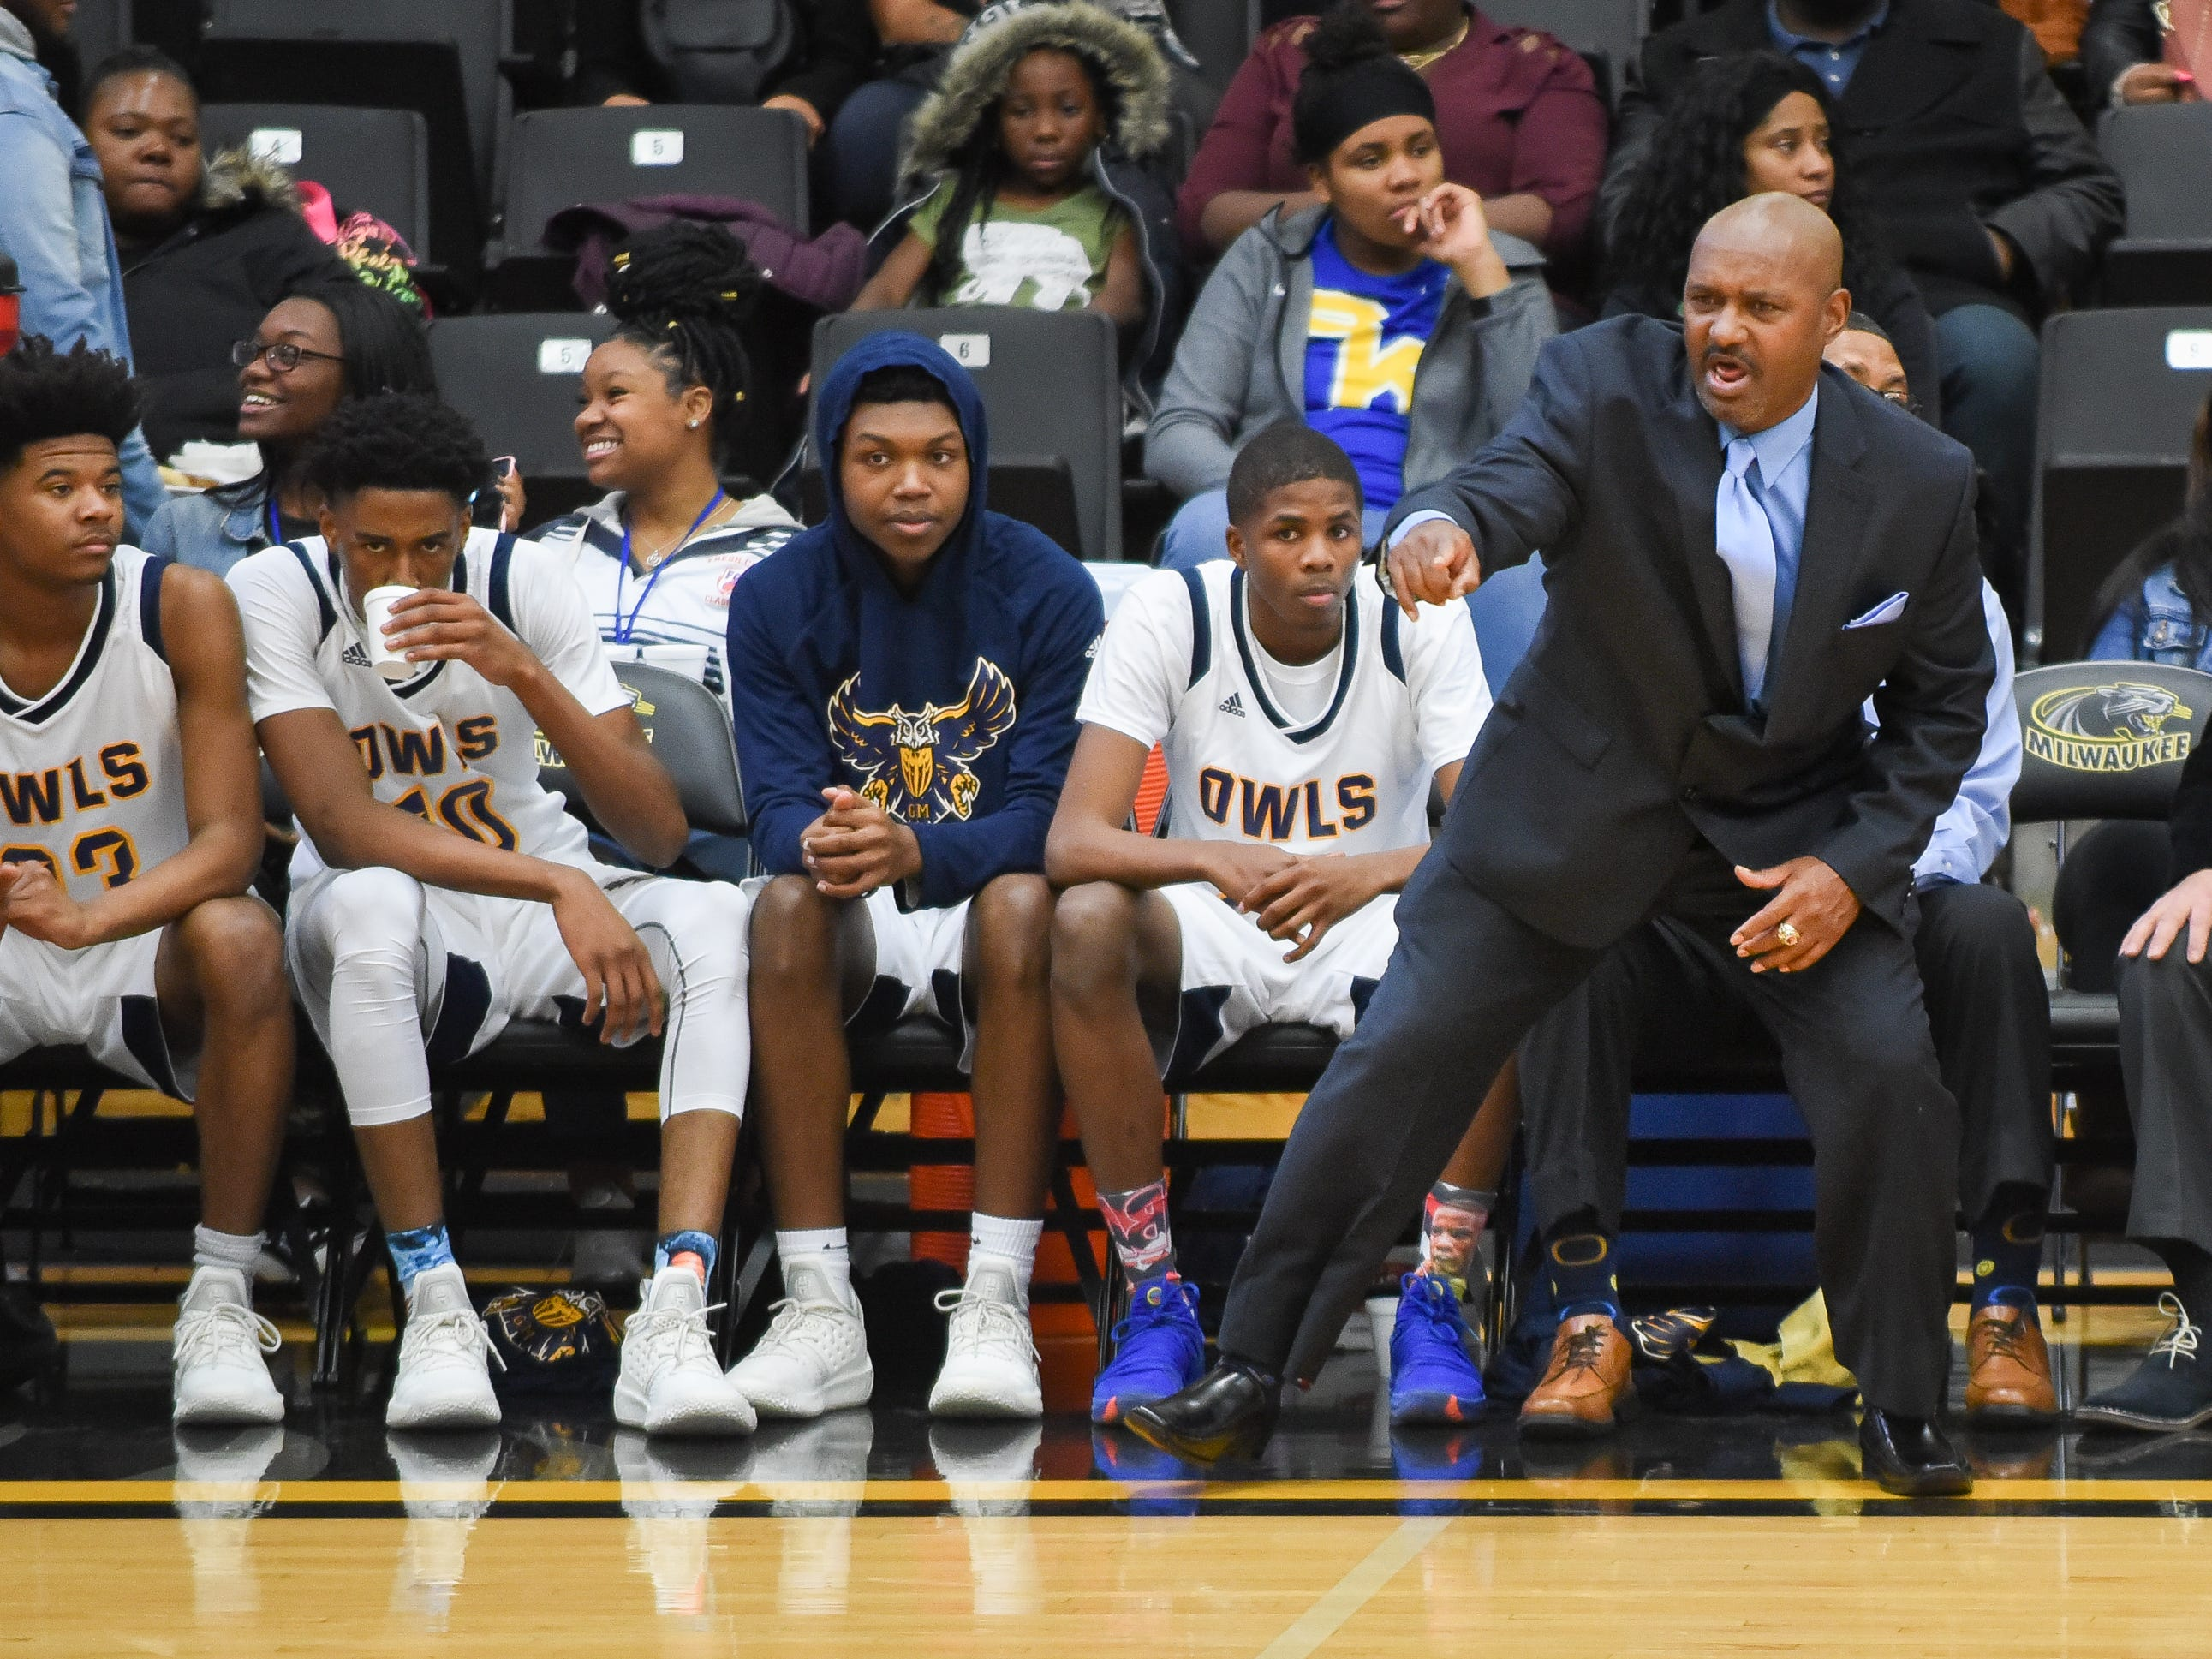 Golda Meir coach Charles Jordan shouts instructions to his team as it plays West Allis Central in the Fresh Coast Classic basketball showcase Saturday, November 24, 2018, at UW-Milwaukee's Klotsche Center.